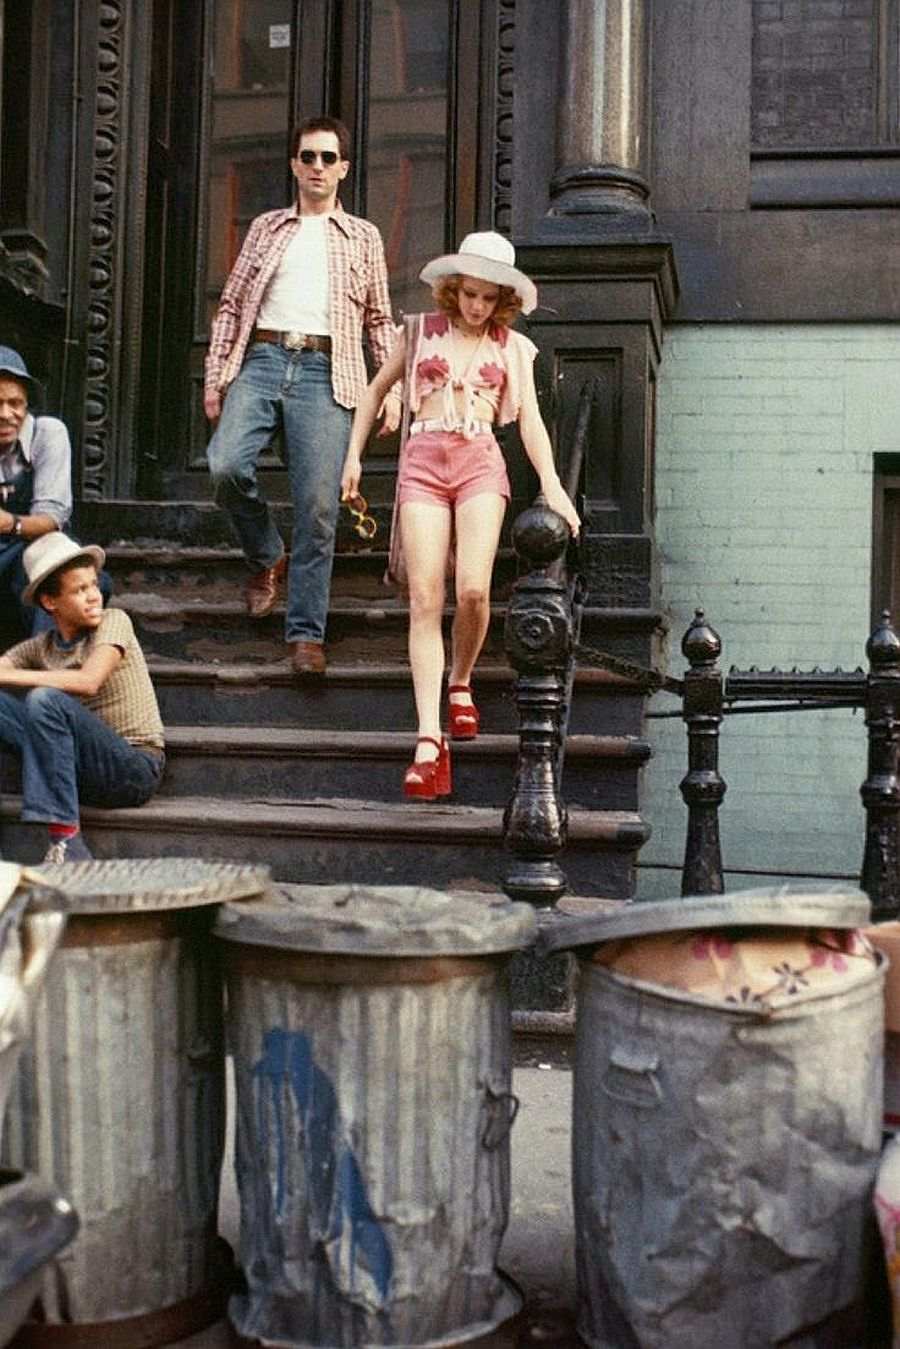 behind-the-scenes-jodie-foster-on-the-set-of-taxi-driver-1976-08